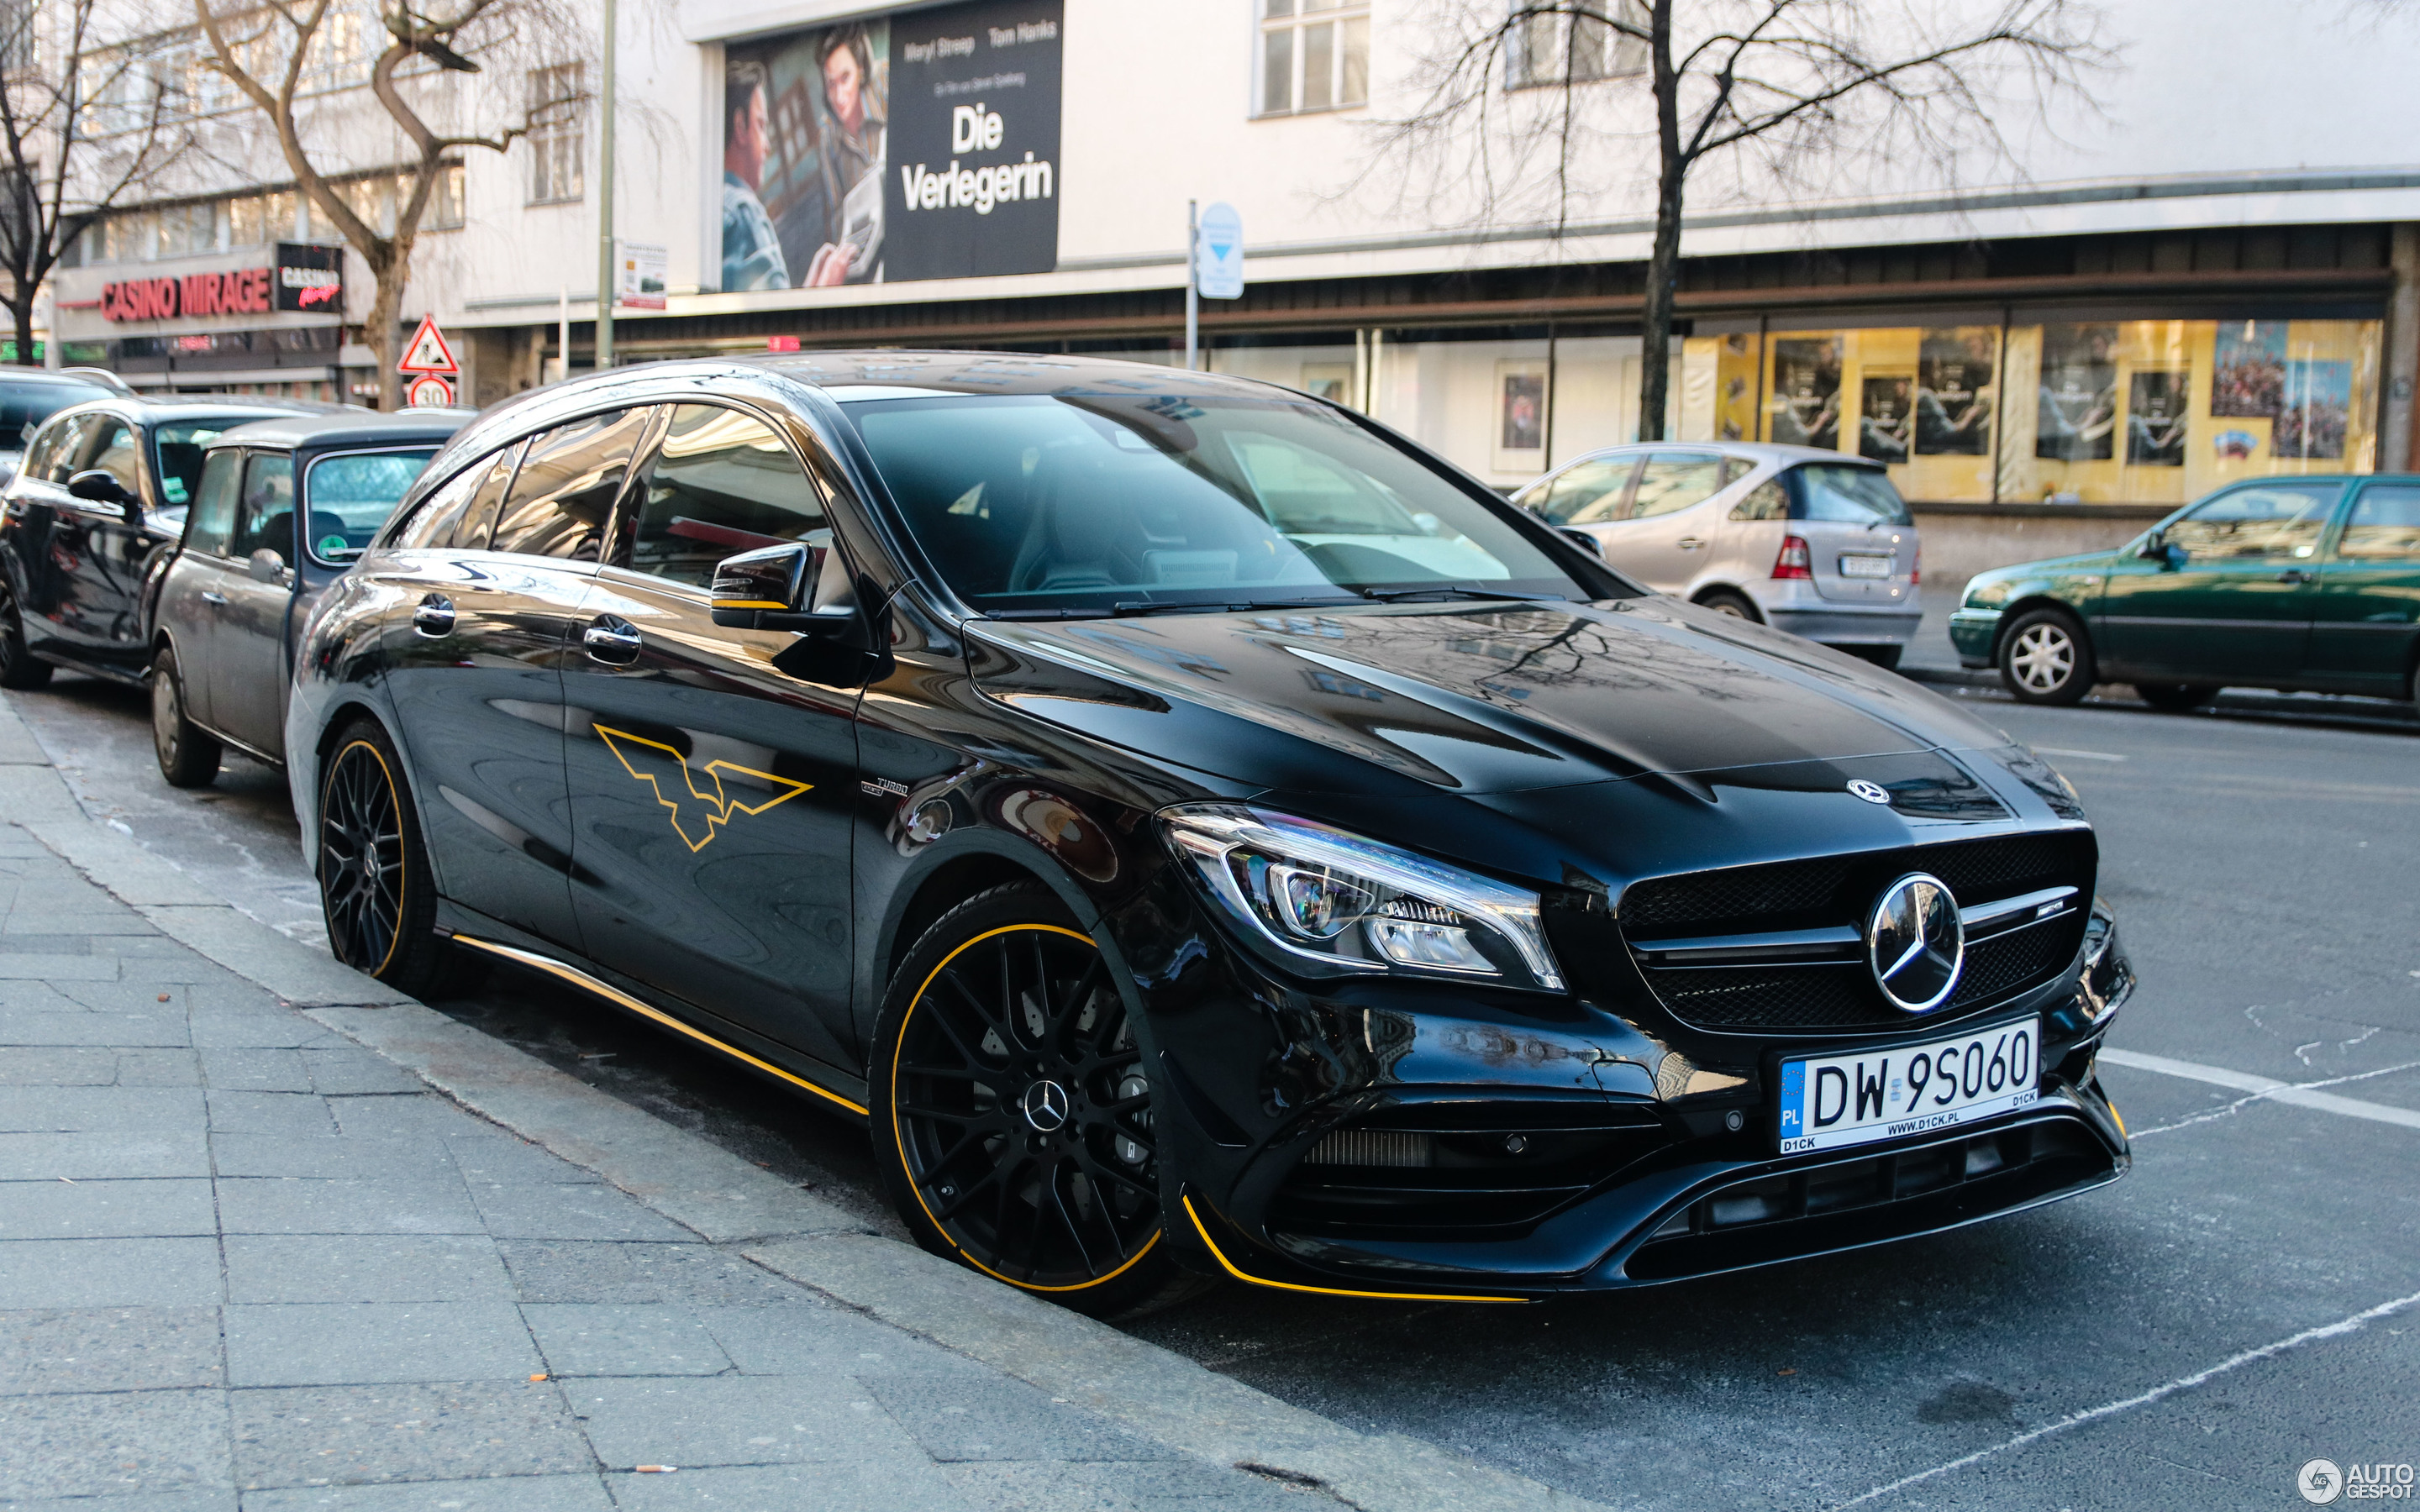 mercedes amg cla 45 shooting brake x117 yellow night edition 3 march 2018 autogespot. Black Bedroom Furniture Sets. Home Design Ideas